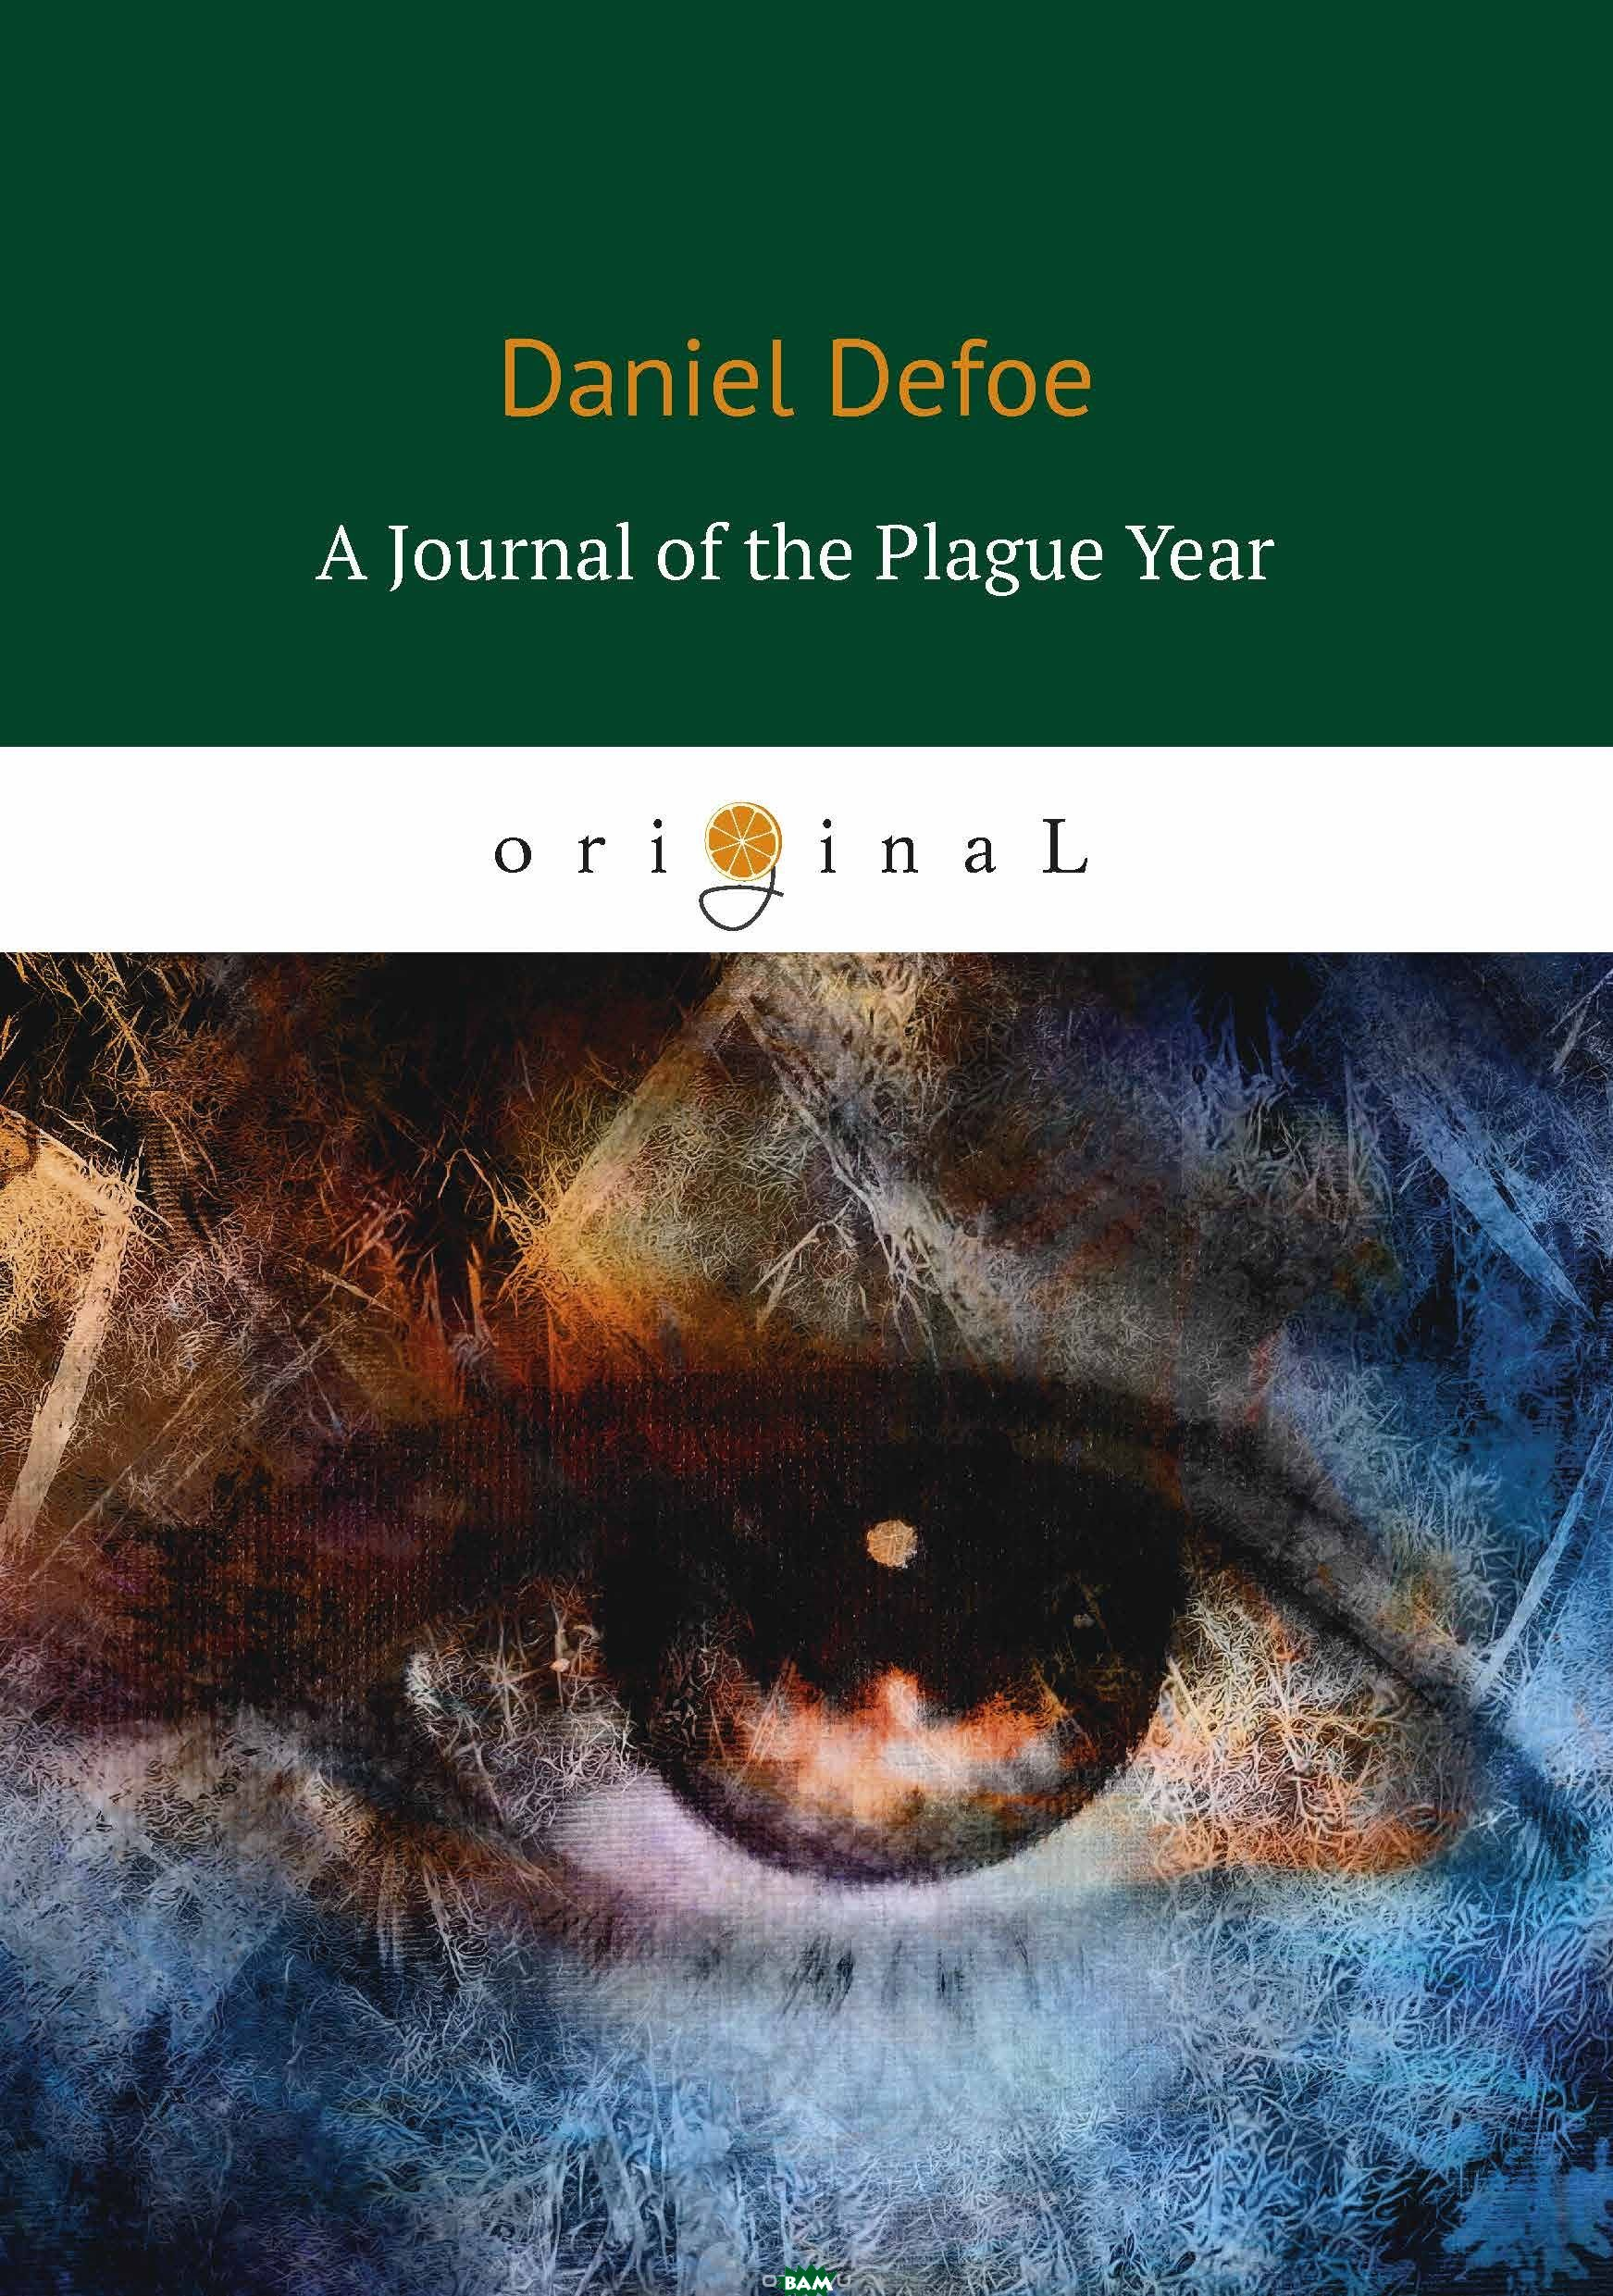 Купить A Journal of the Plague Year, T8RUGRAM, Defoe Daniel, 978-5-521-06813-5